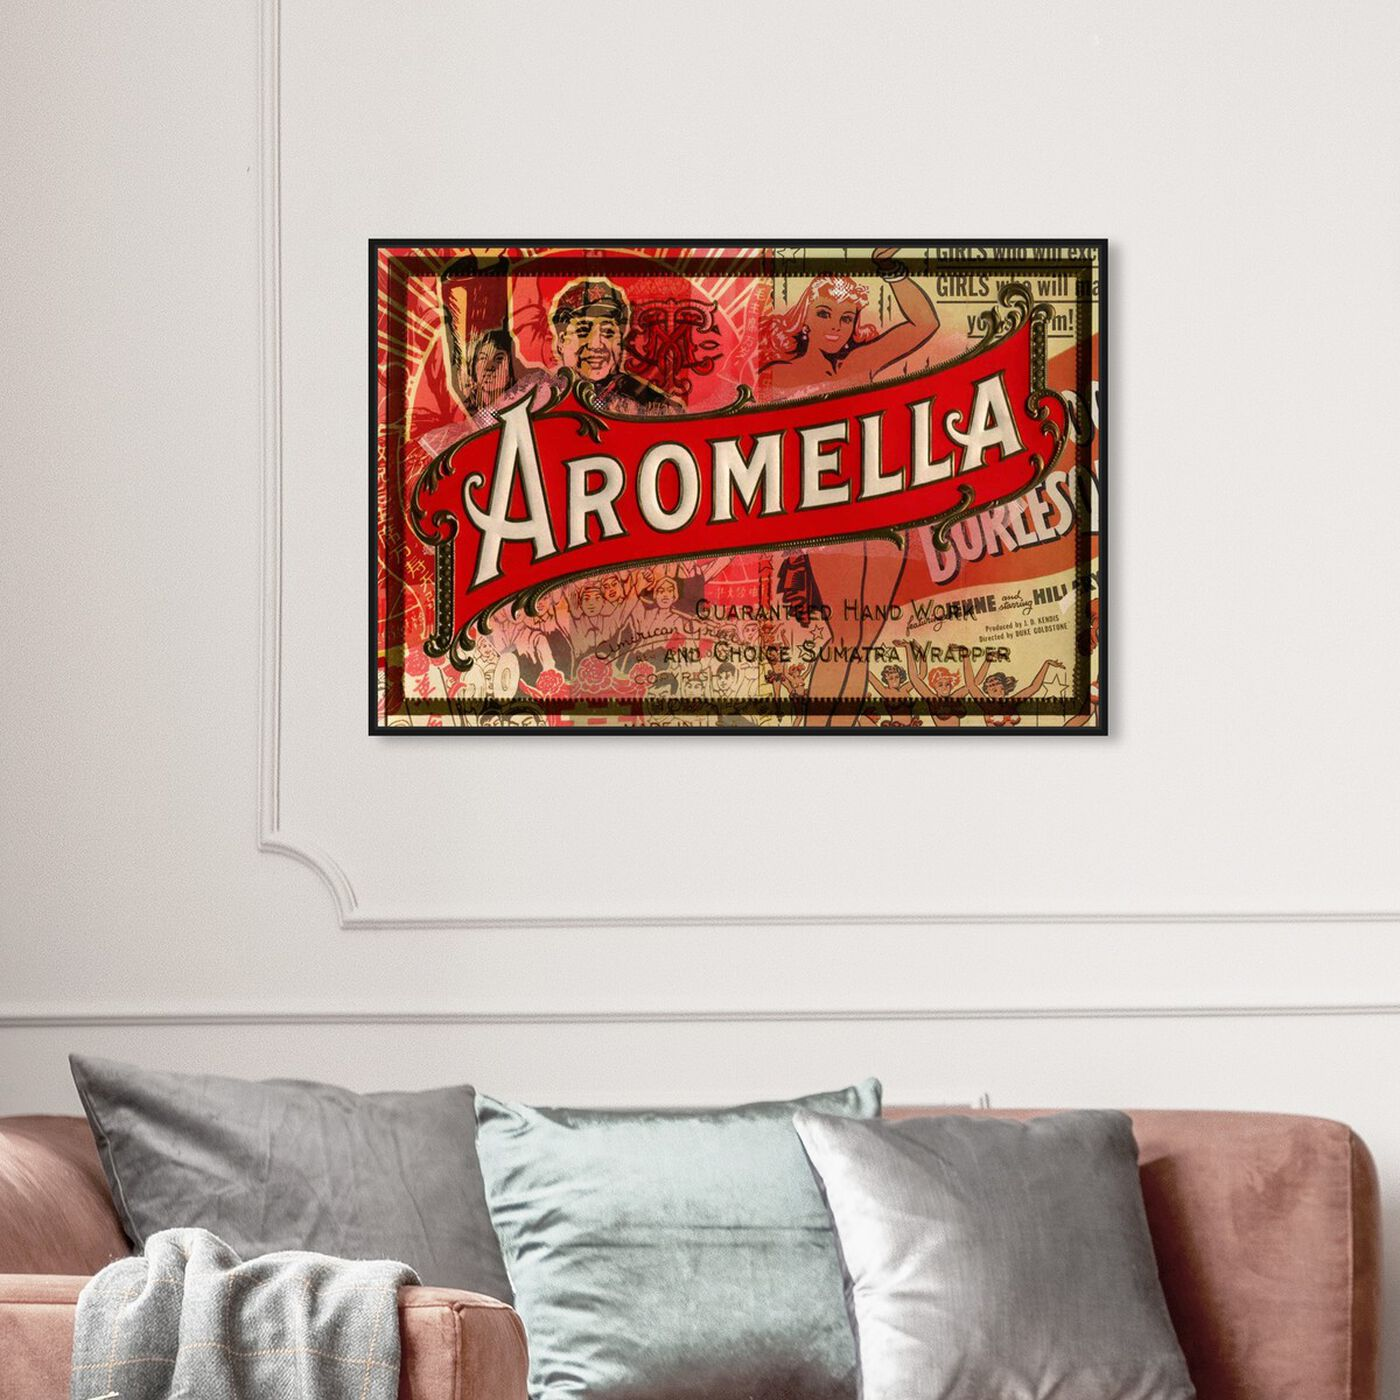 Hanging view of Aromella featuring advertising and posters art.